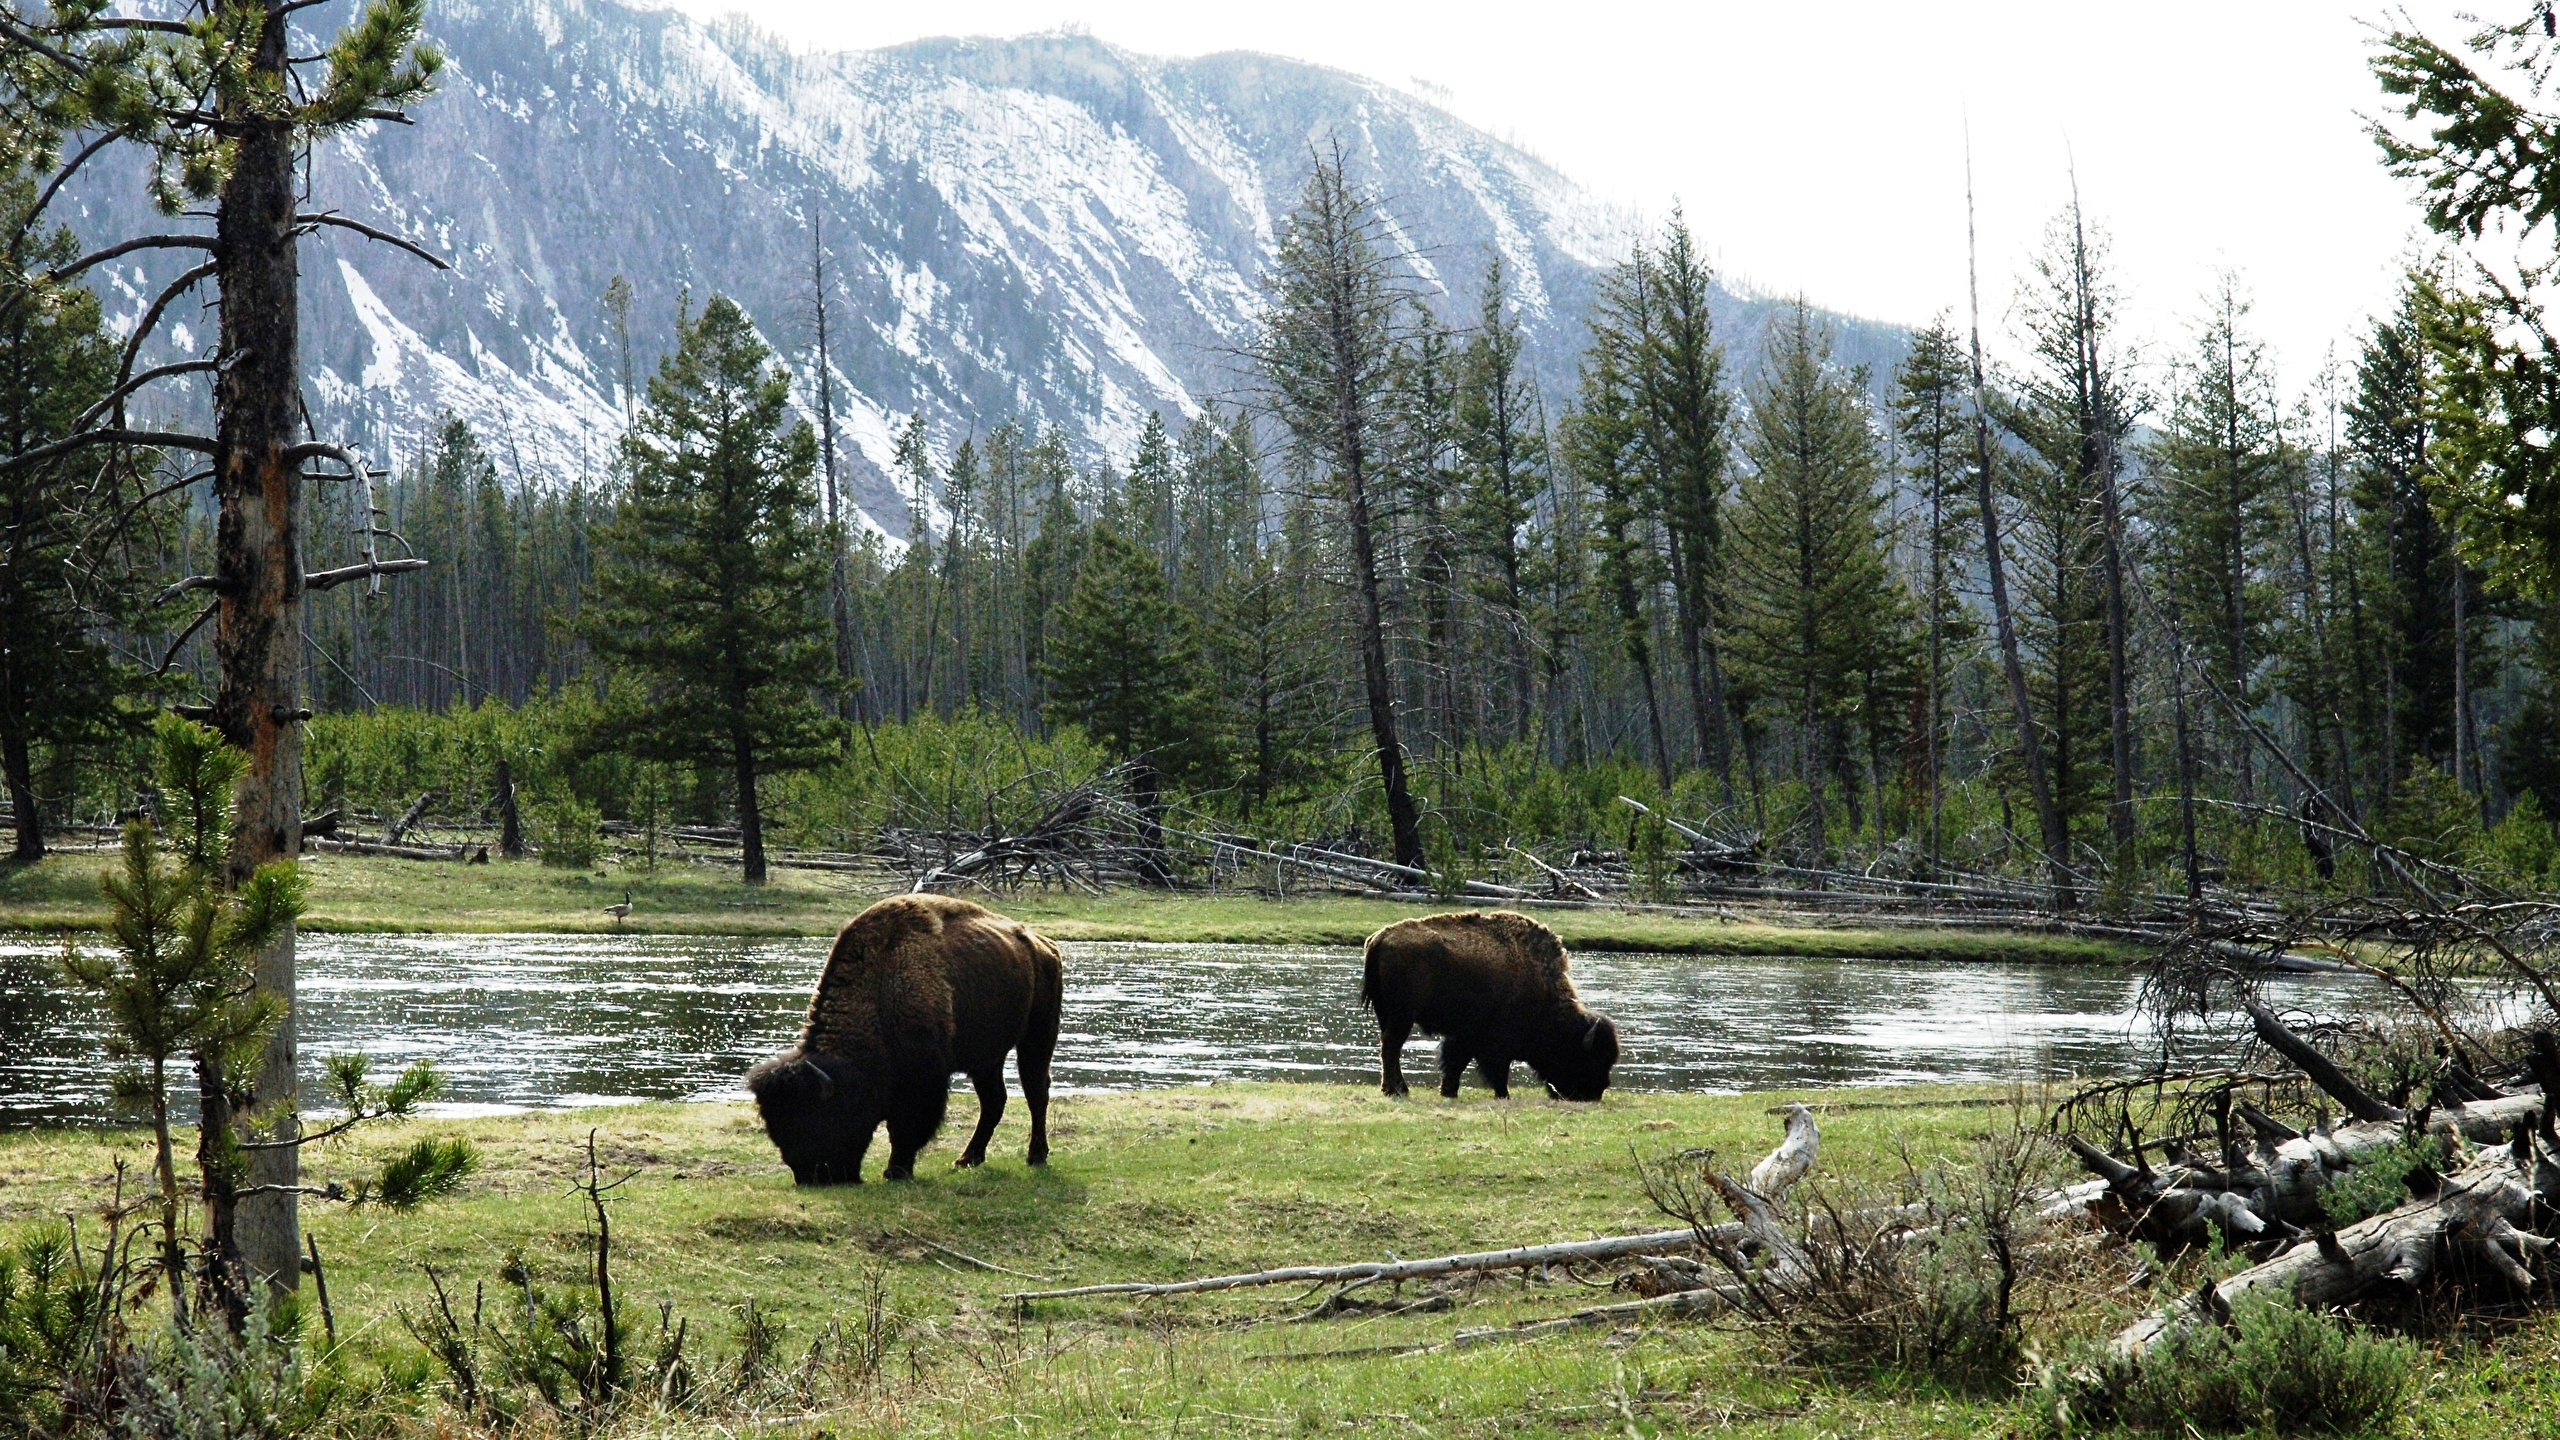 Wallpapers American buffalo Nature Mountains Forests Grass 2560x1440